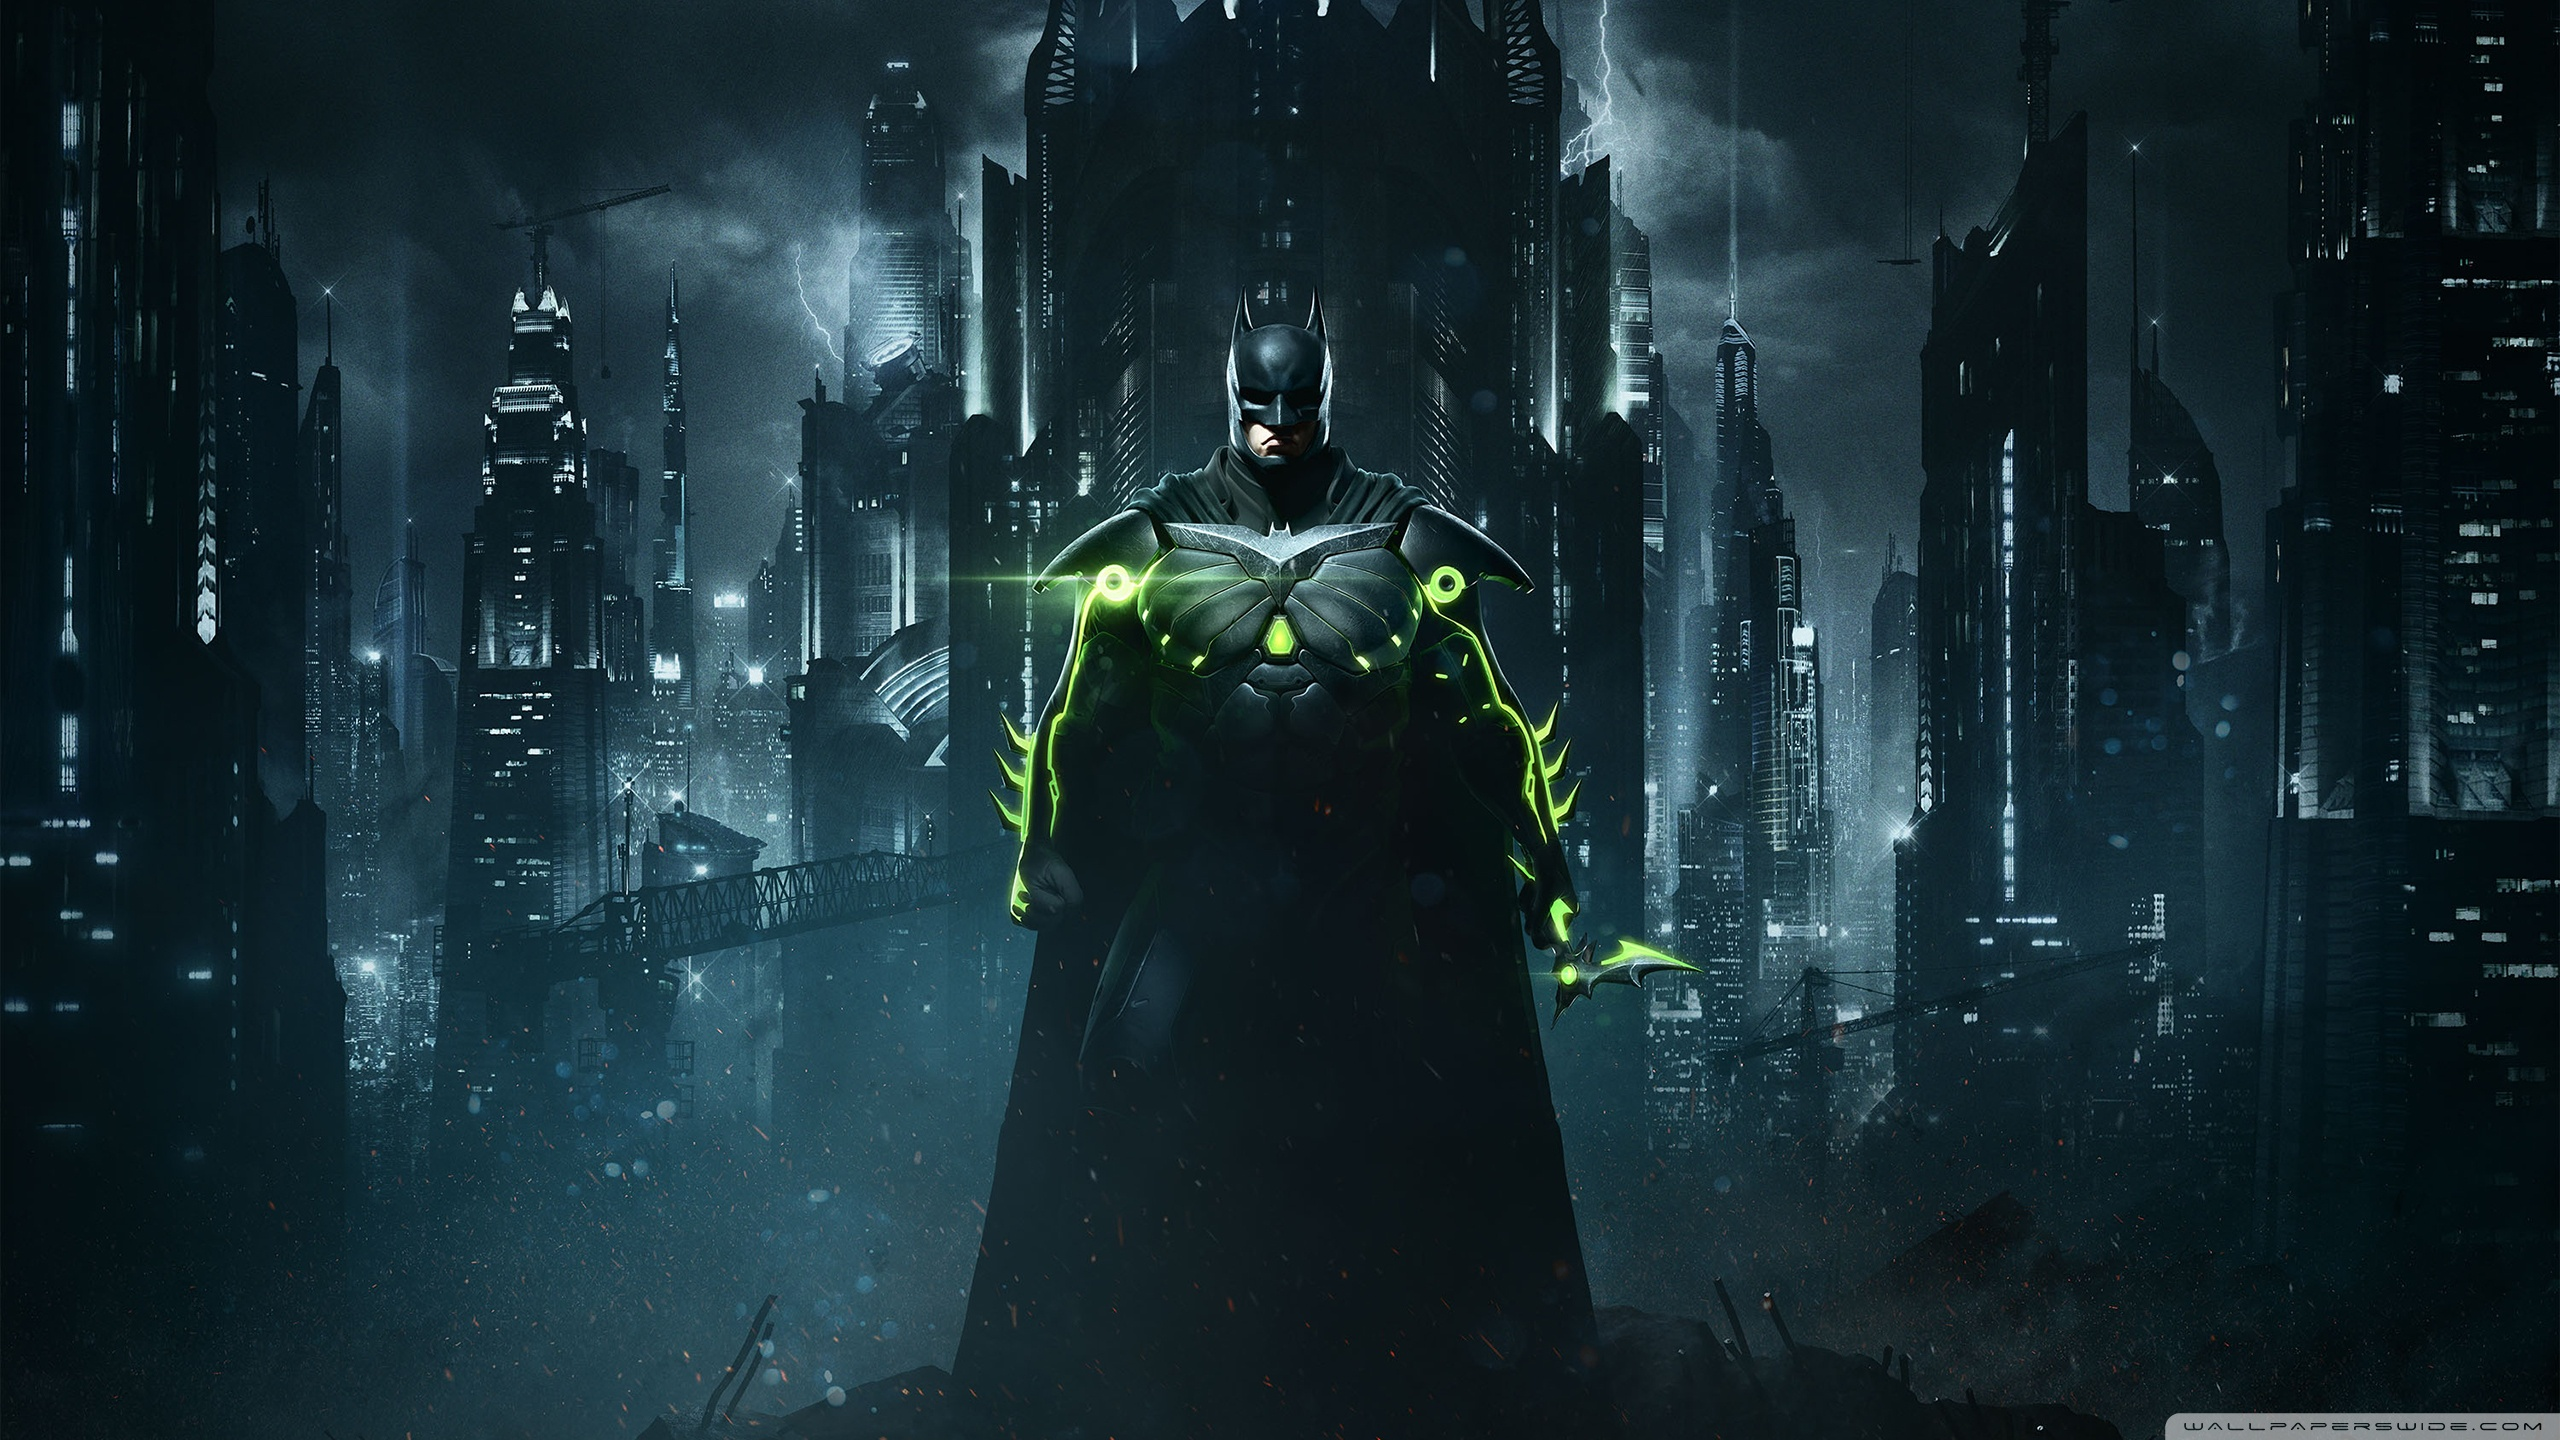 Batman Wallpapers and Background Images   stmednet 2560x1440